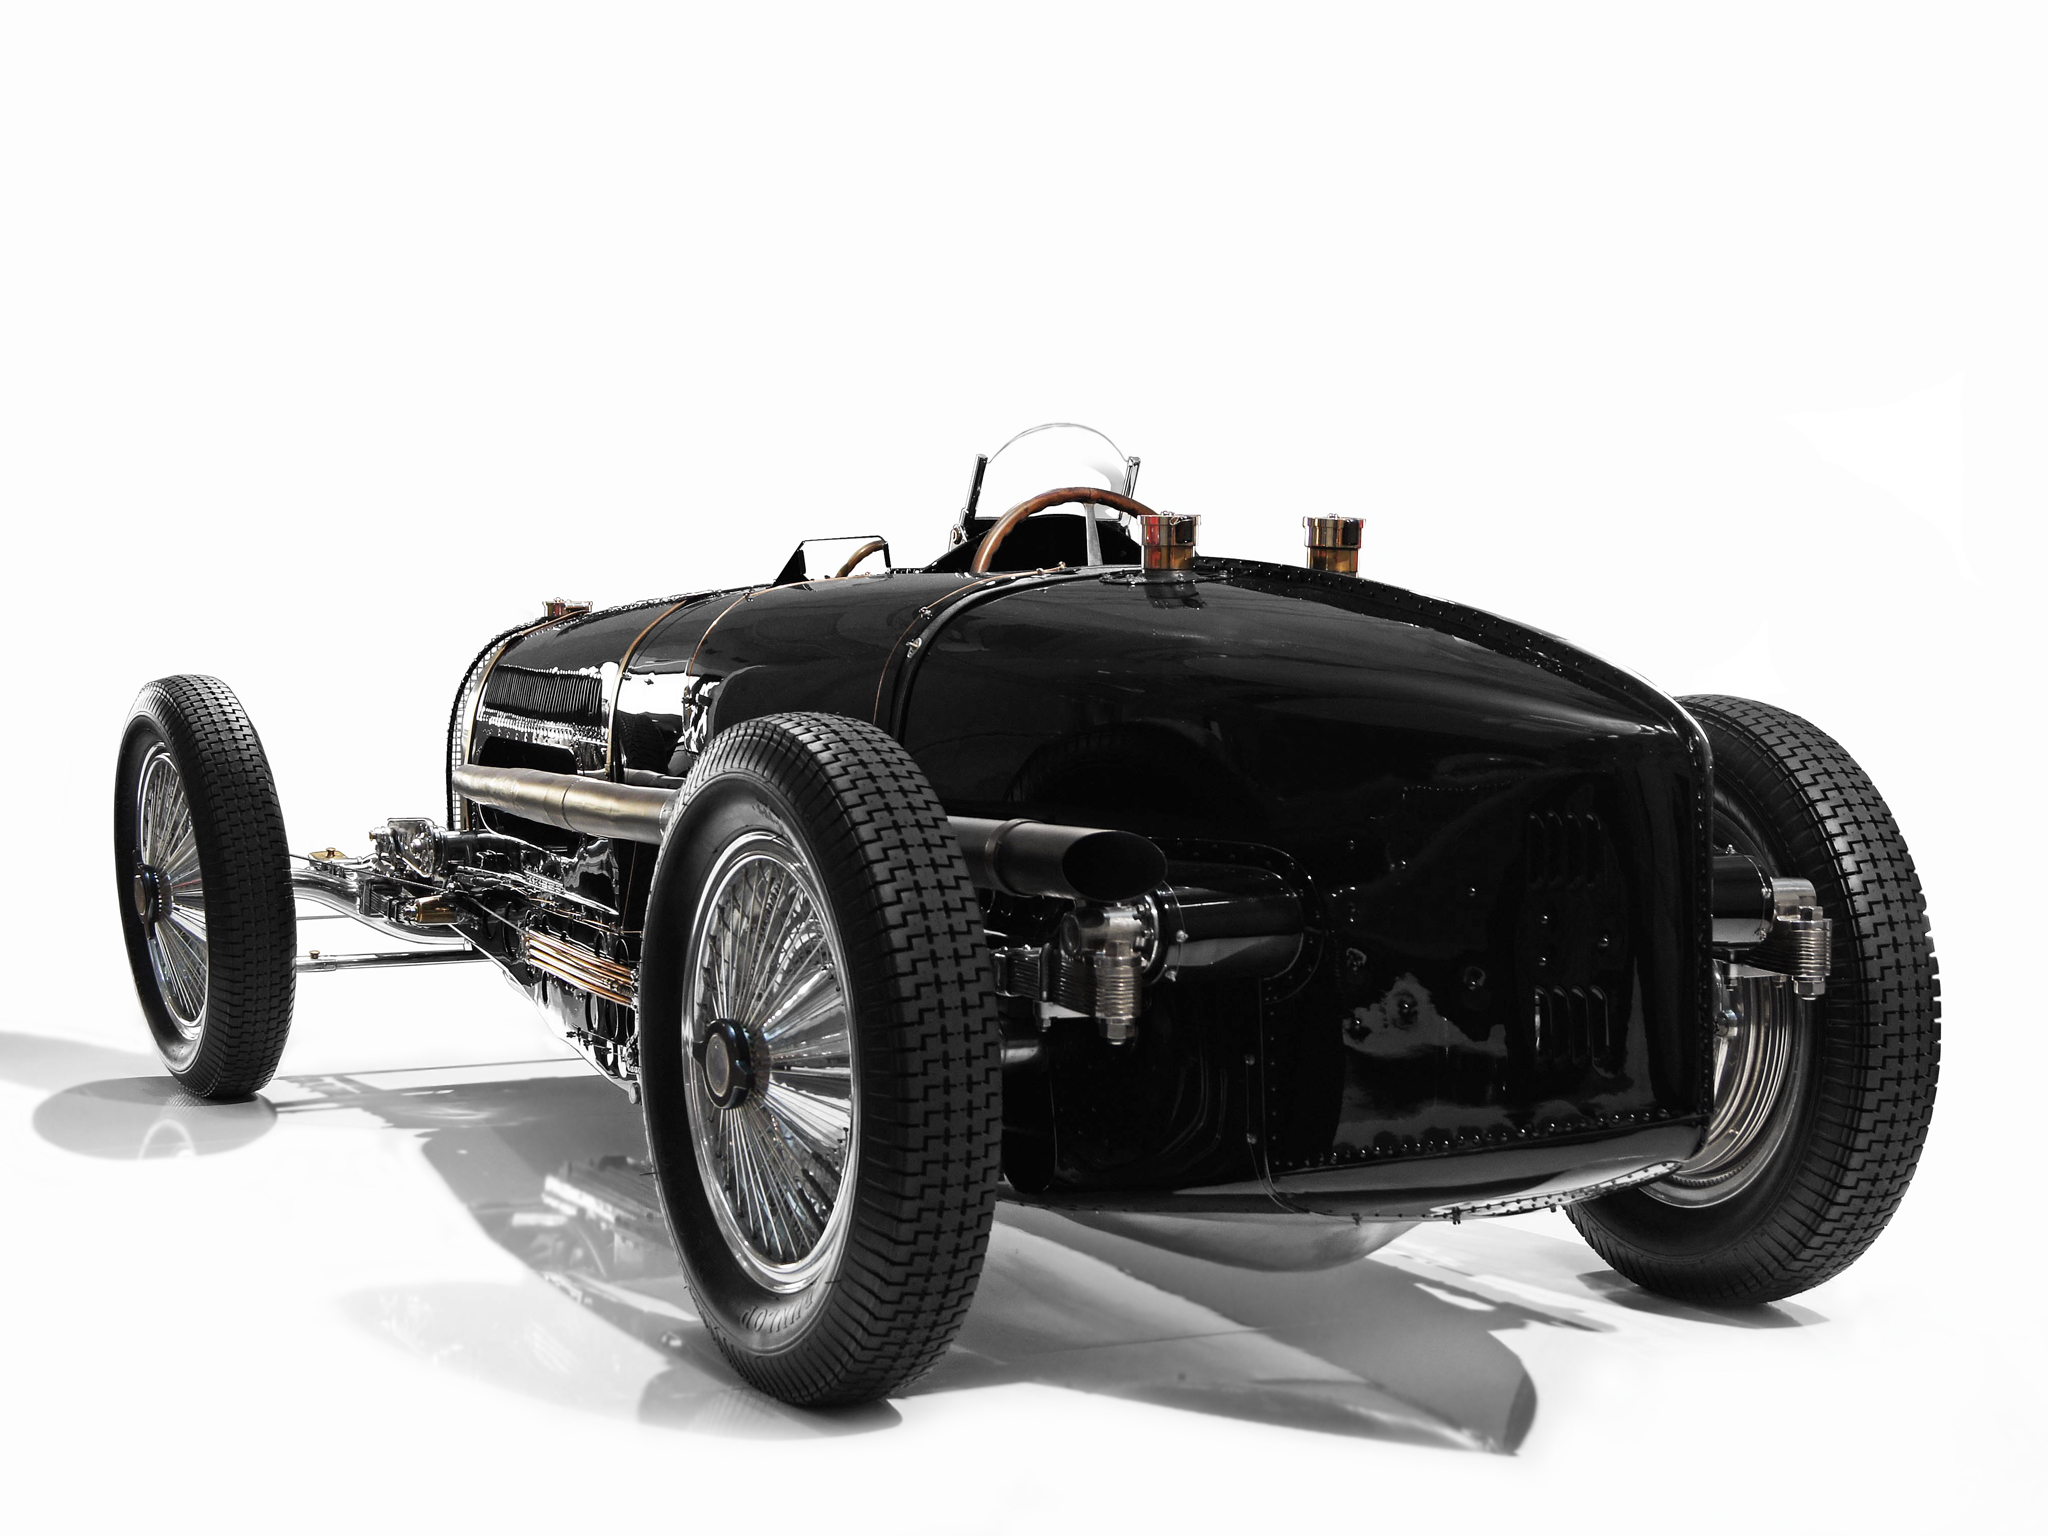 bugatti type 59 grand prix 39 1933 full hd wallpaper and background 2048x1536 id 265004. Black Bedroom Furniture Sets. Home Design Ideas